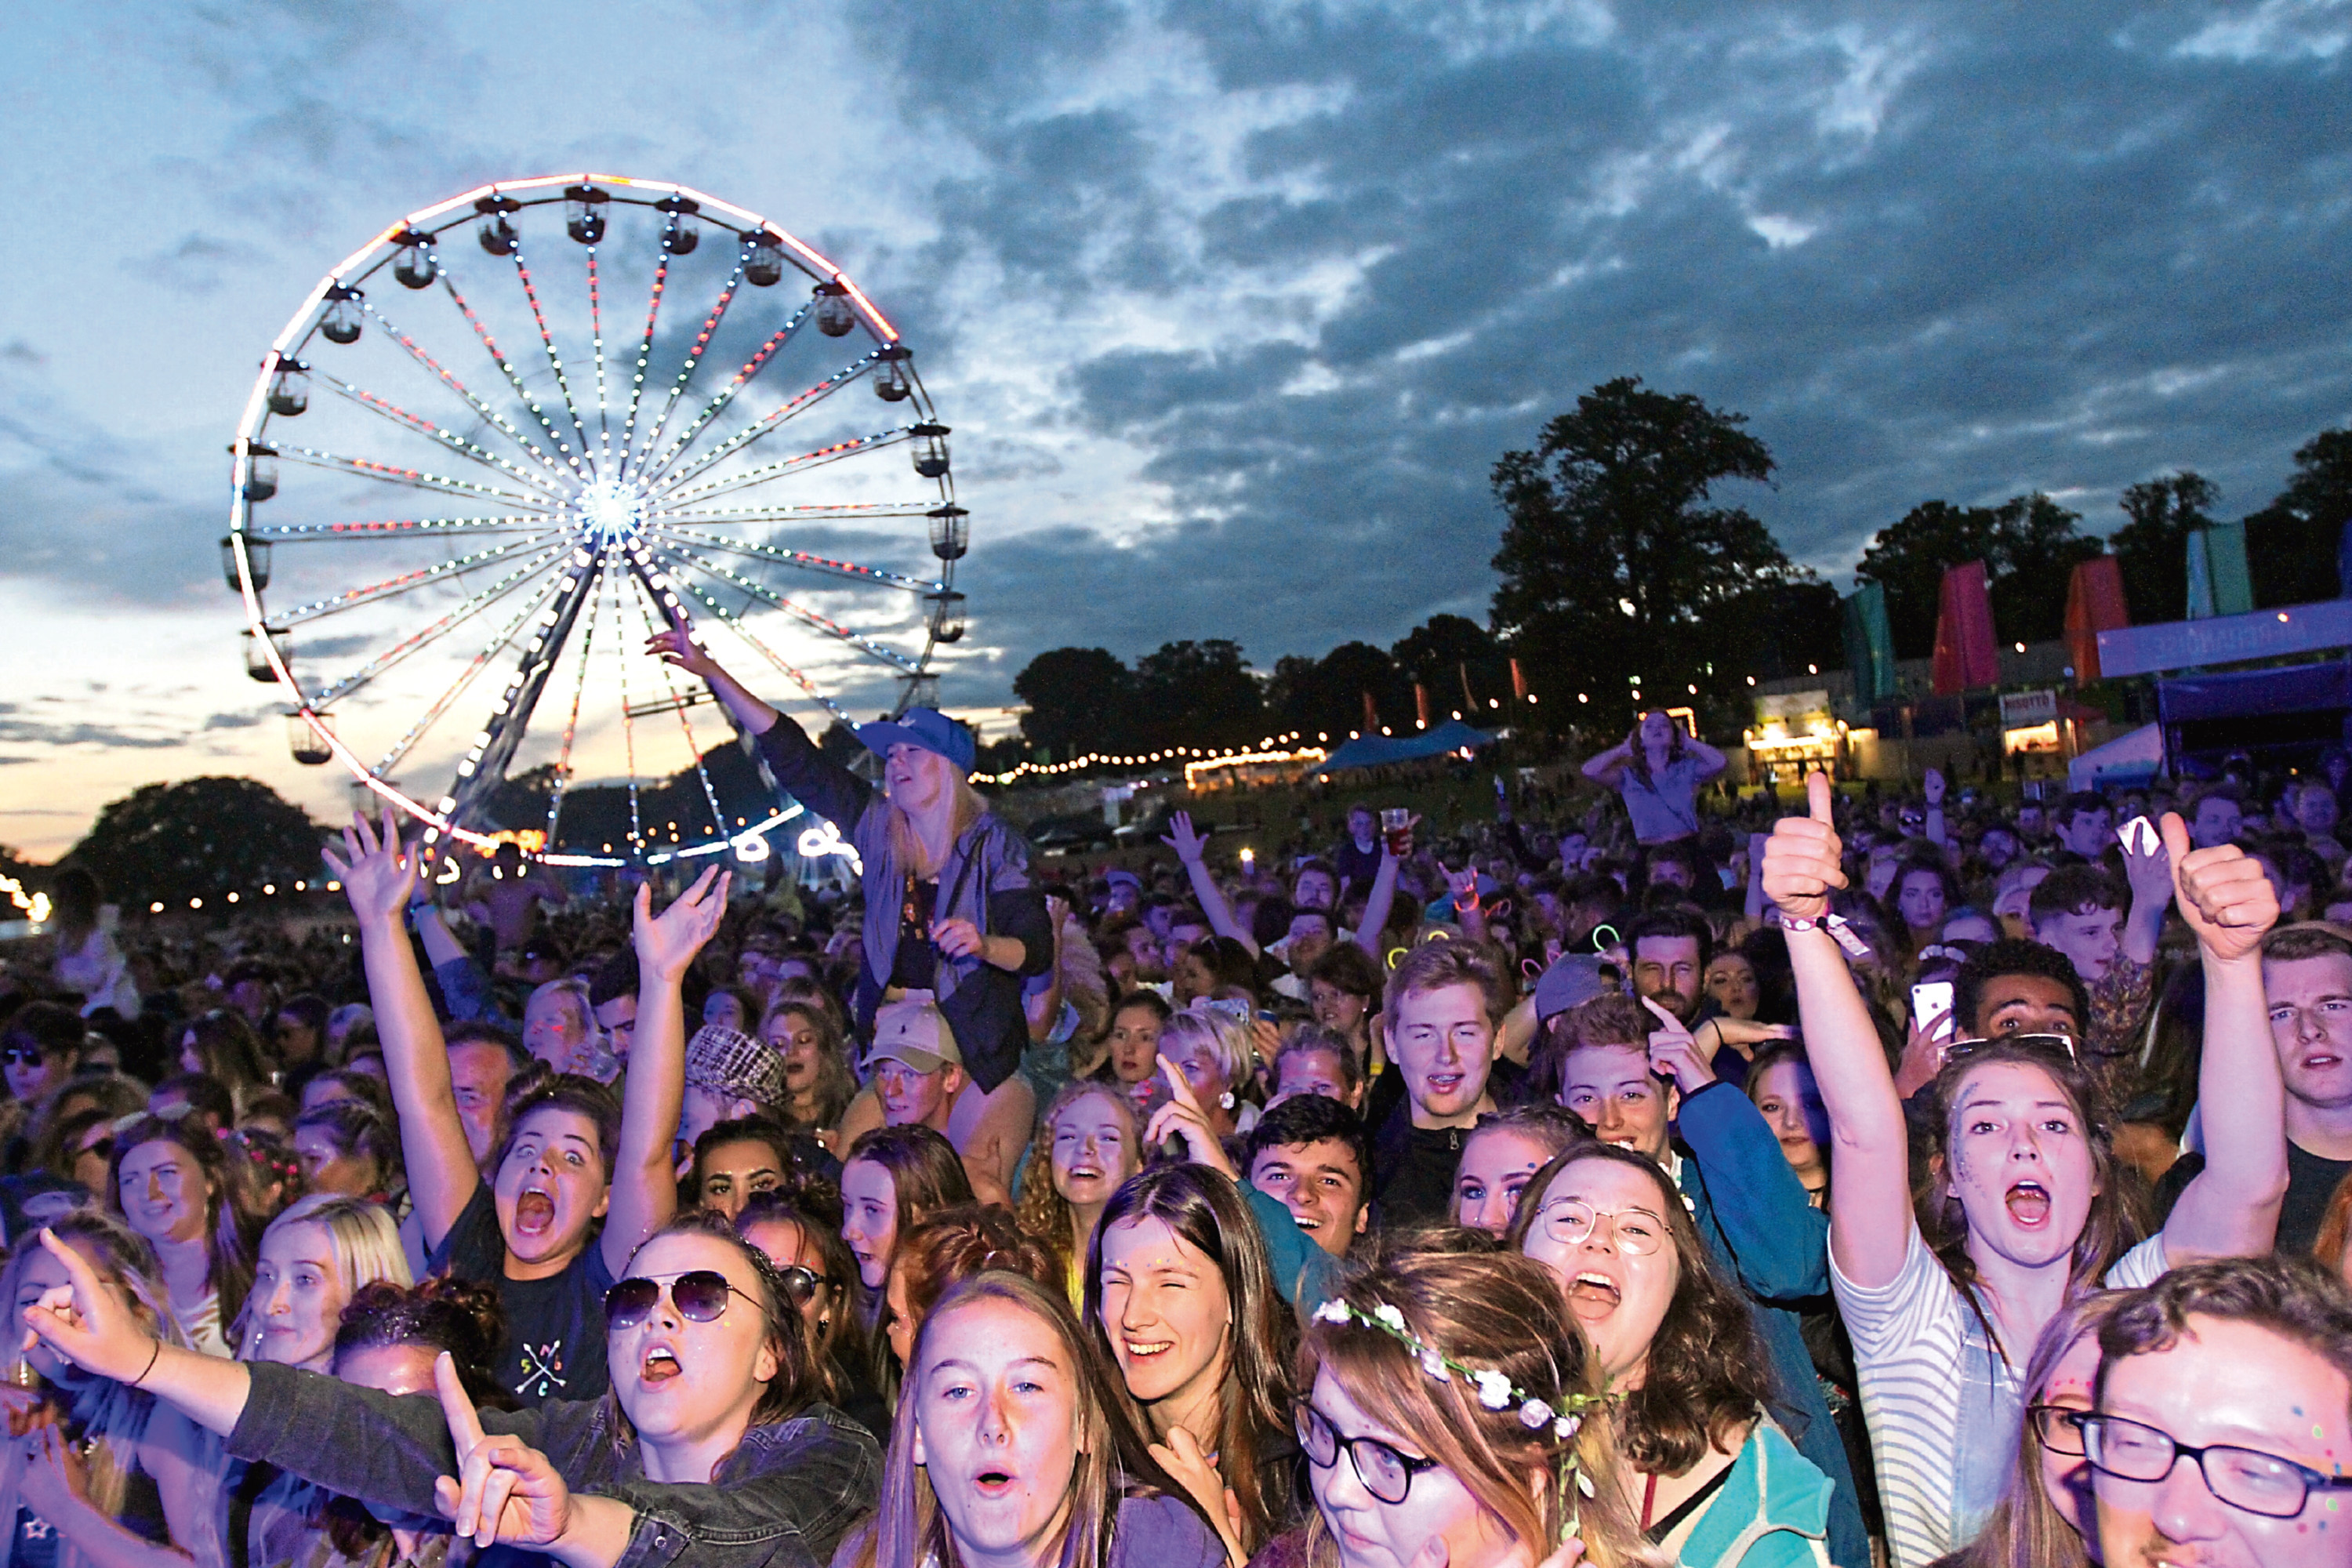 The crowds enjoying Carnival Fifty-Six at Camperdown Park in 2017.